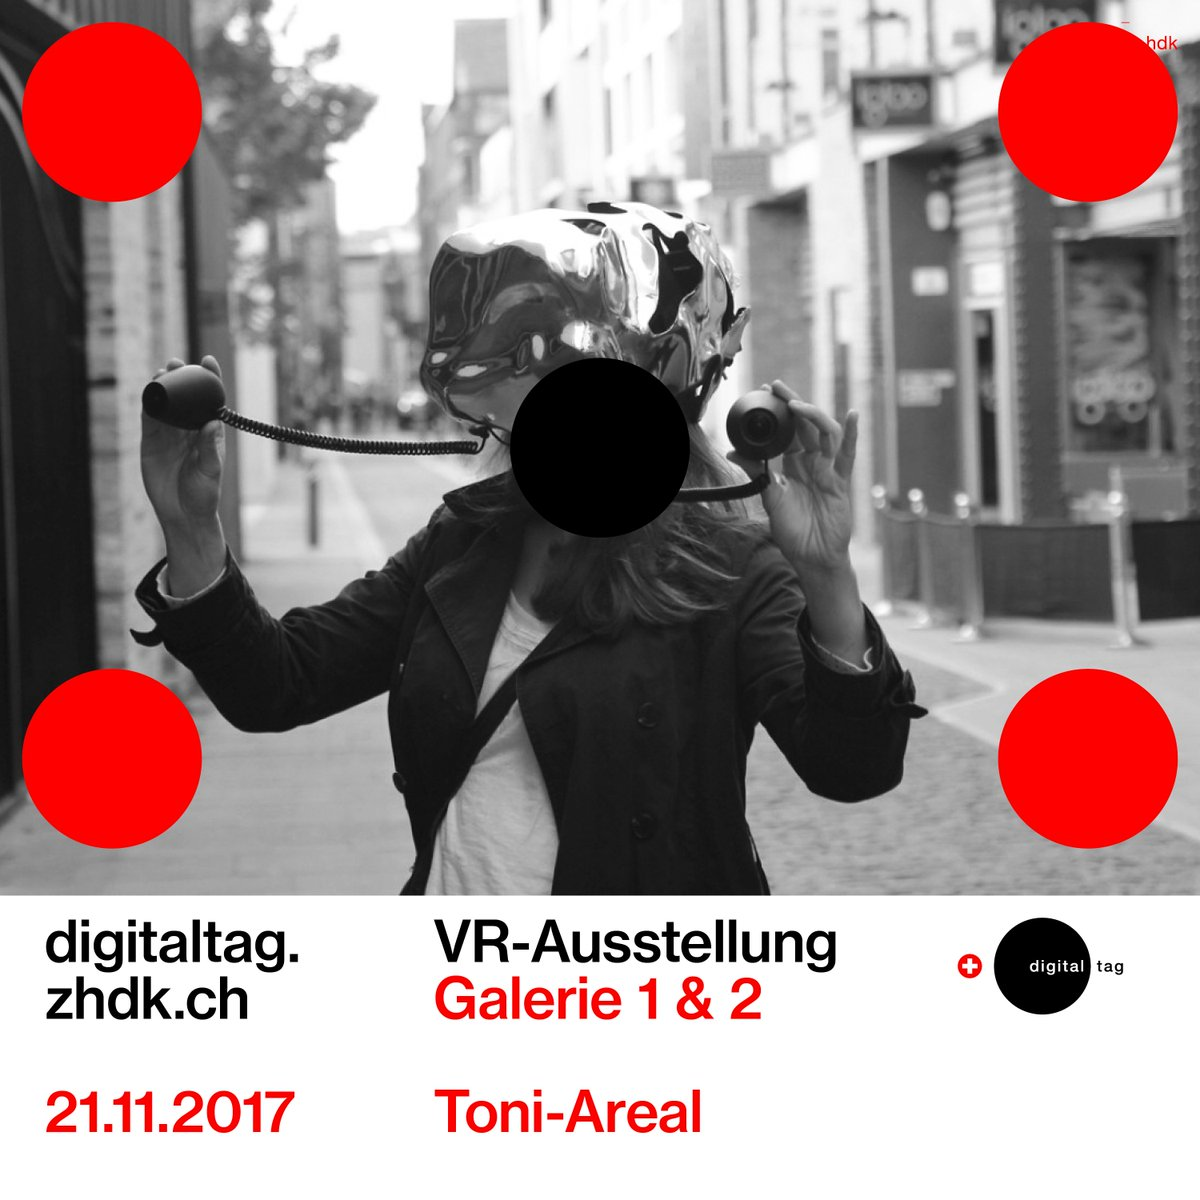 Game design zhdk on twitter vr conference expanding immersive game design zhdk on twitter vr conference expanding immersive design immerse yourself 14 showcased projects get involved solutioingenieria Gallery